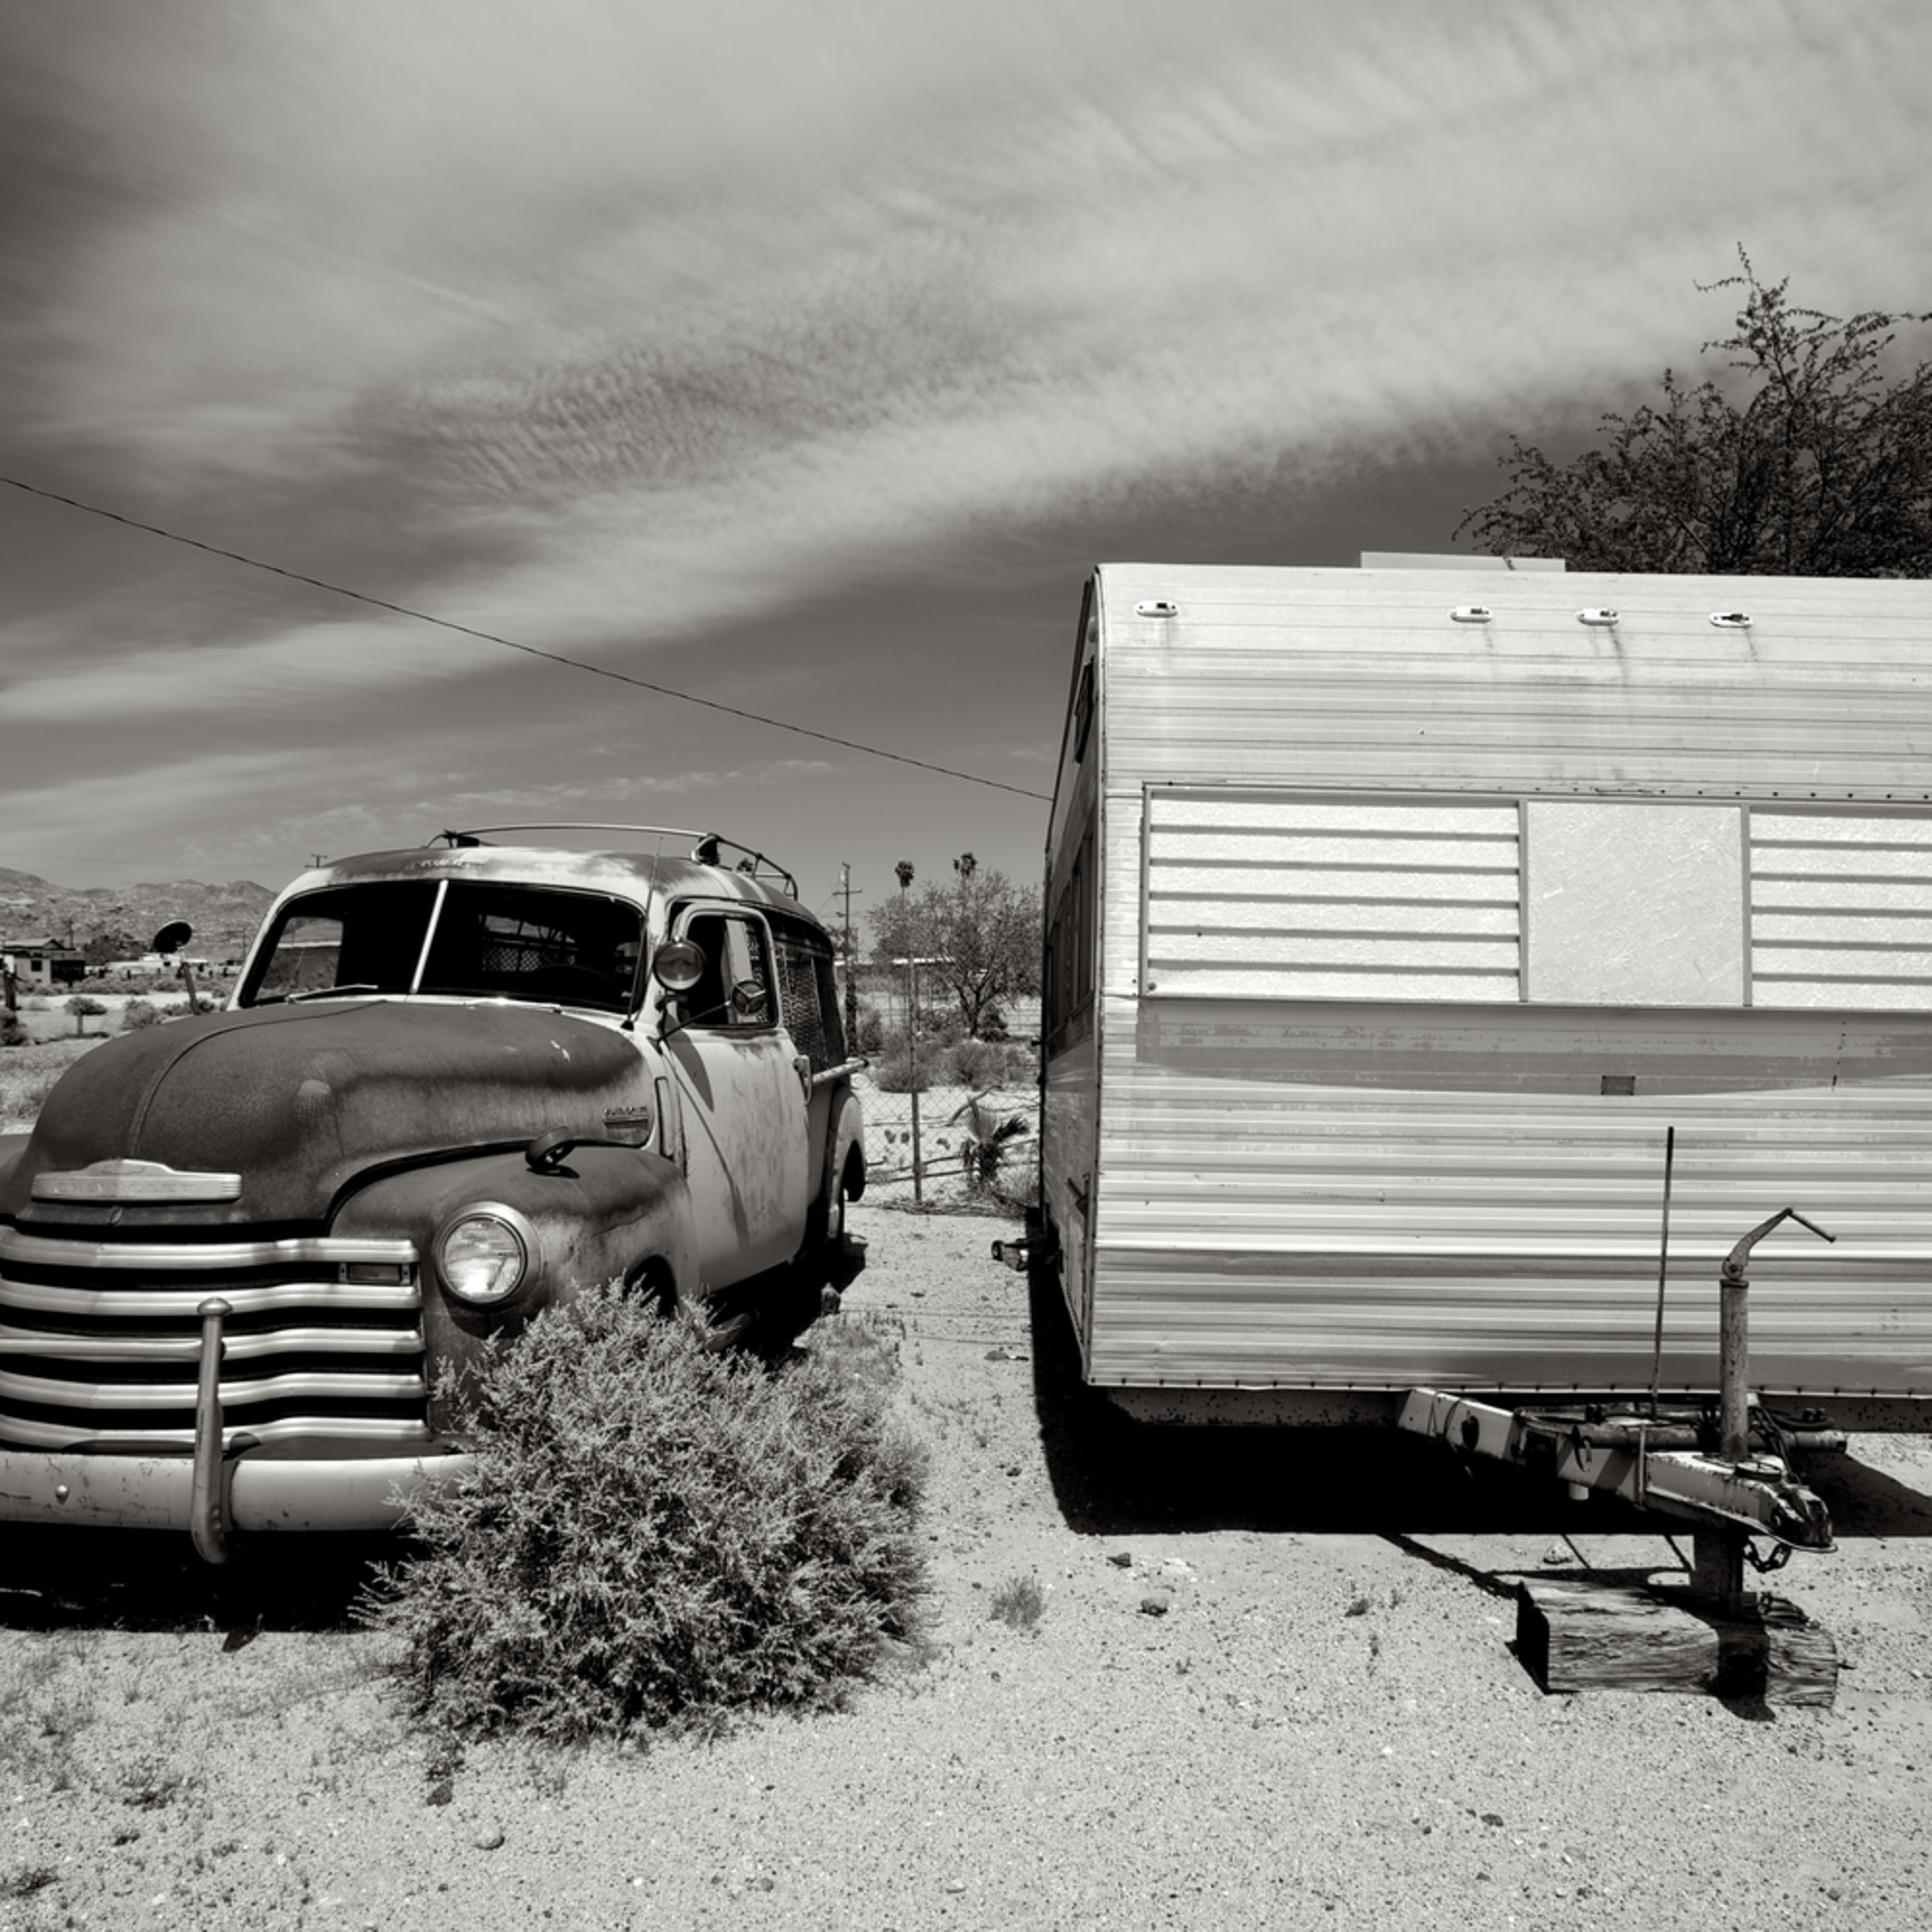 Vintage police wagon and ideal trailer trona california dze9p3